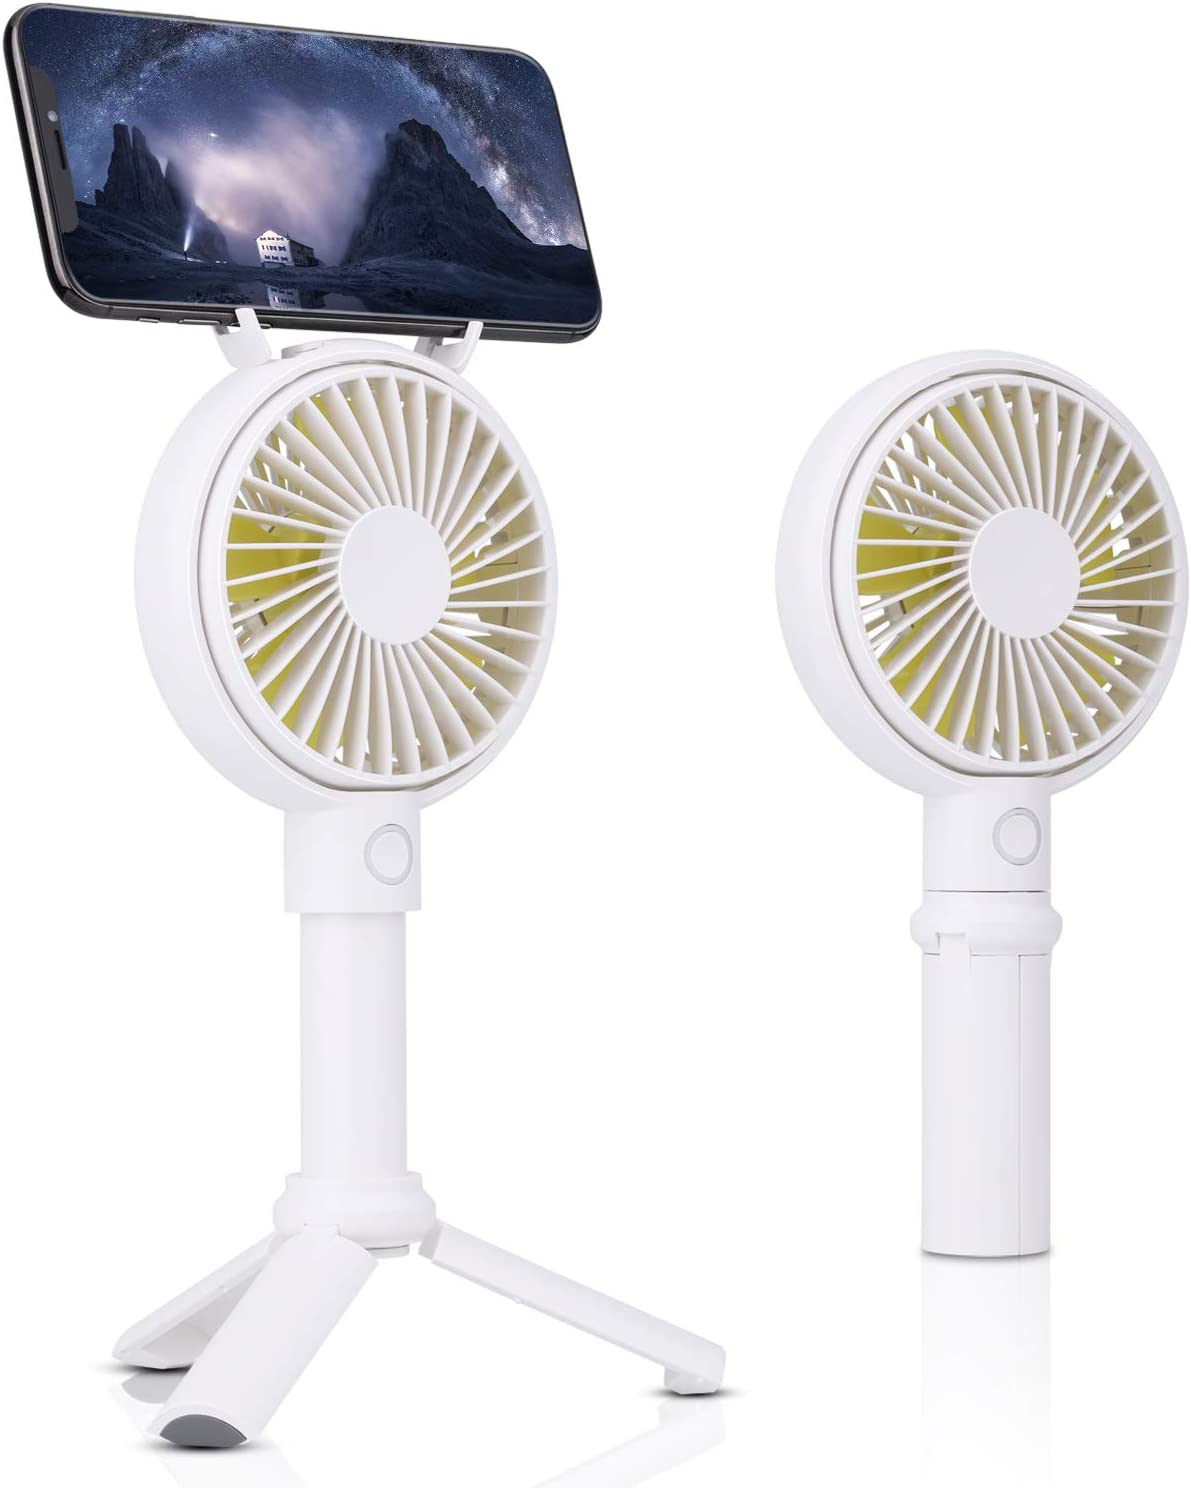 Mini Handheld Fan XINBAOHONG Personal Portable Desktop Stroller Fan with USB Rechargeable Battery Operated Cooling Folding Electric Fan for Office Room Outdoor Household Traveling White